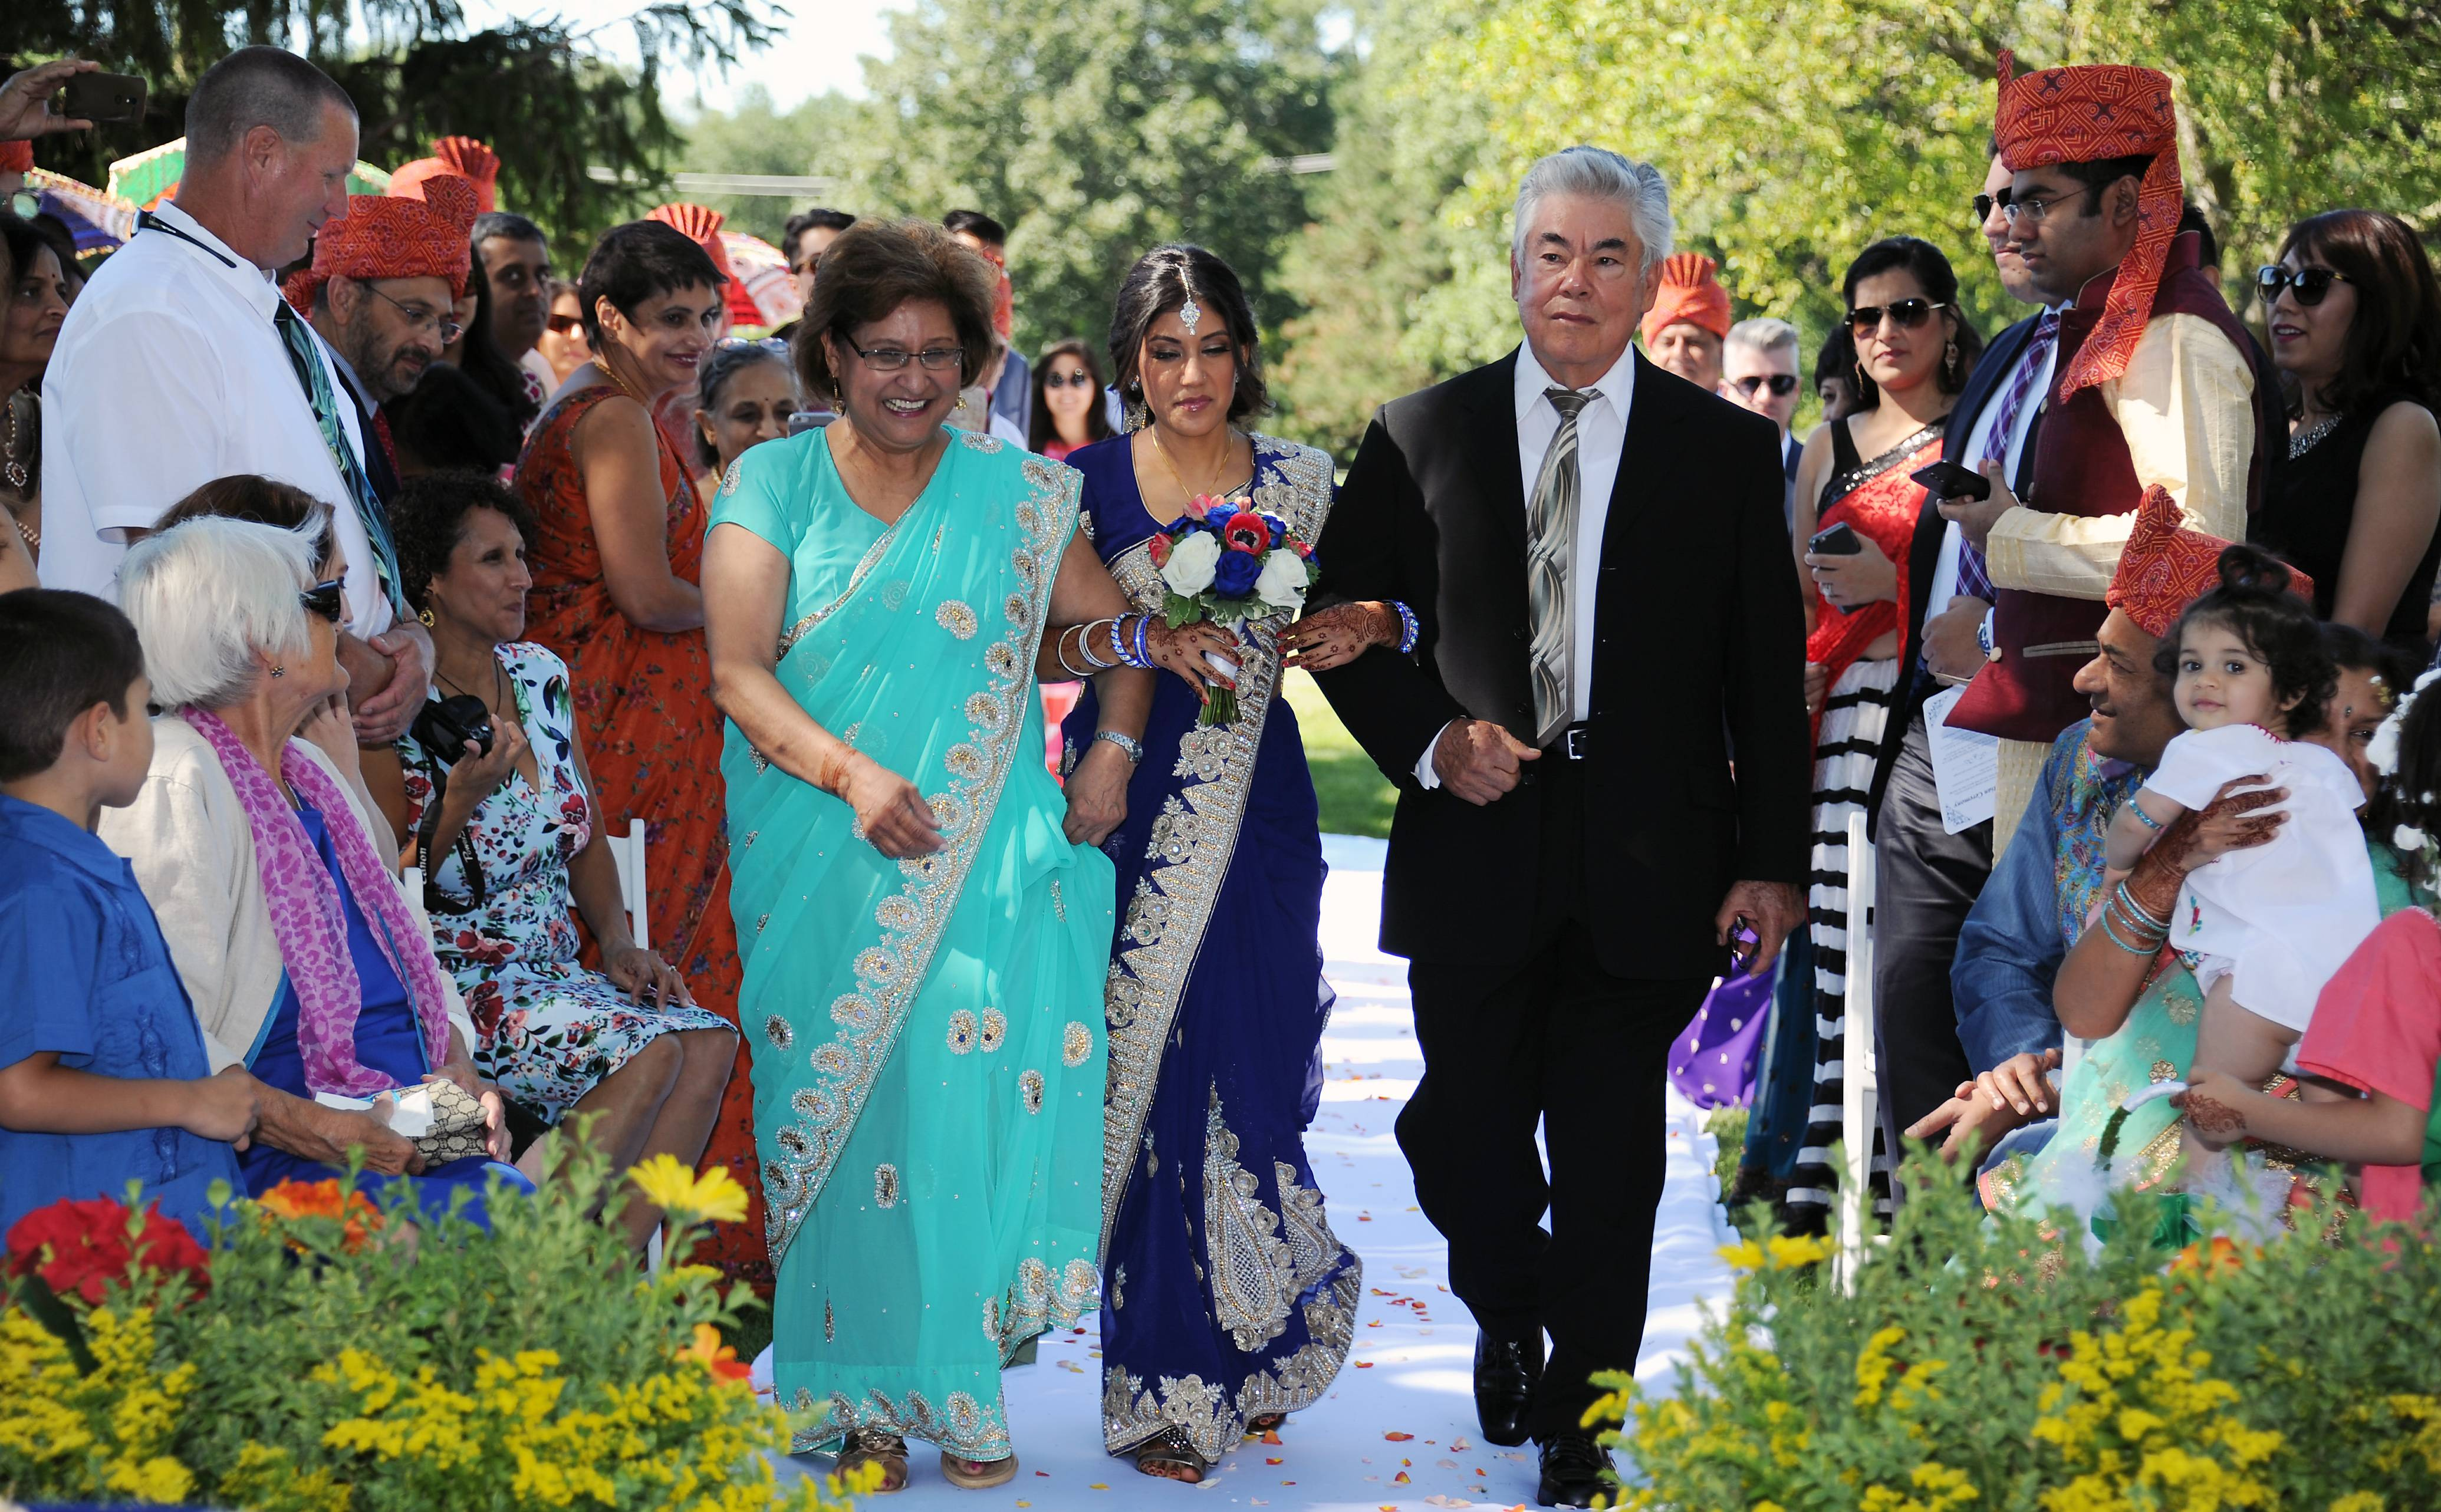 Veronica Garcia was escorted up the aisle by her parents, Ruth and Antonio Garcia, in a wedding that combined Indian, Mexican and American traditions.